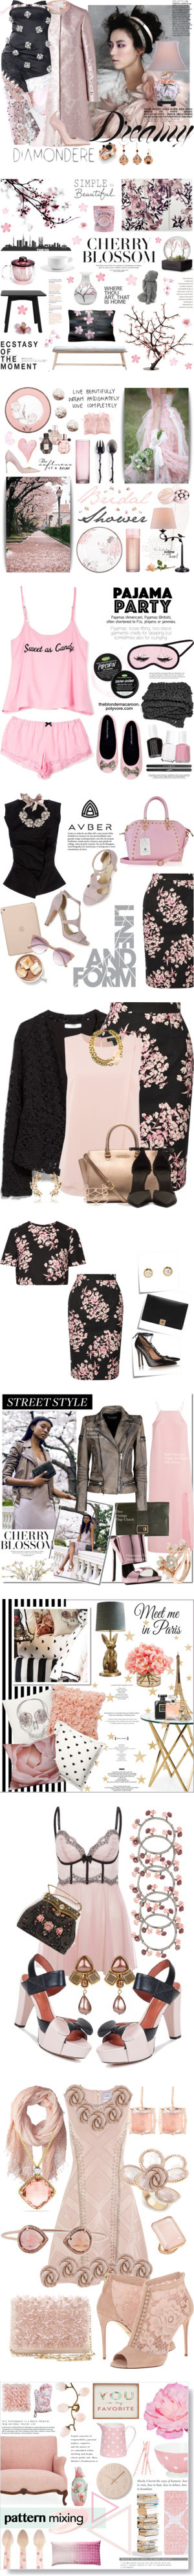 """""""Pink Cherry Blossom"""" by yours-styling-best-friend ❤ liked on Polyvore"""